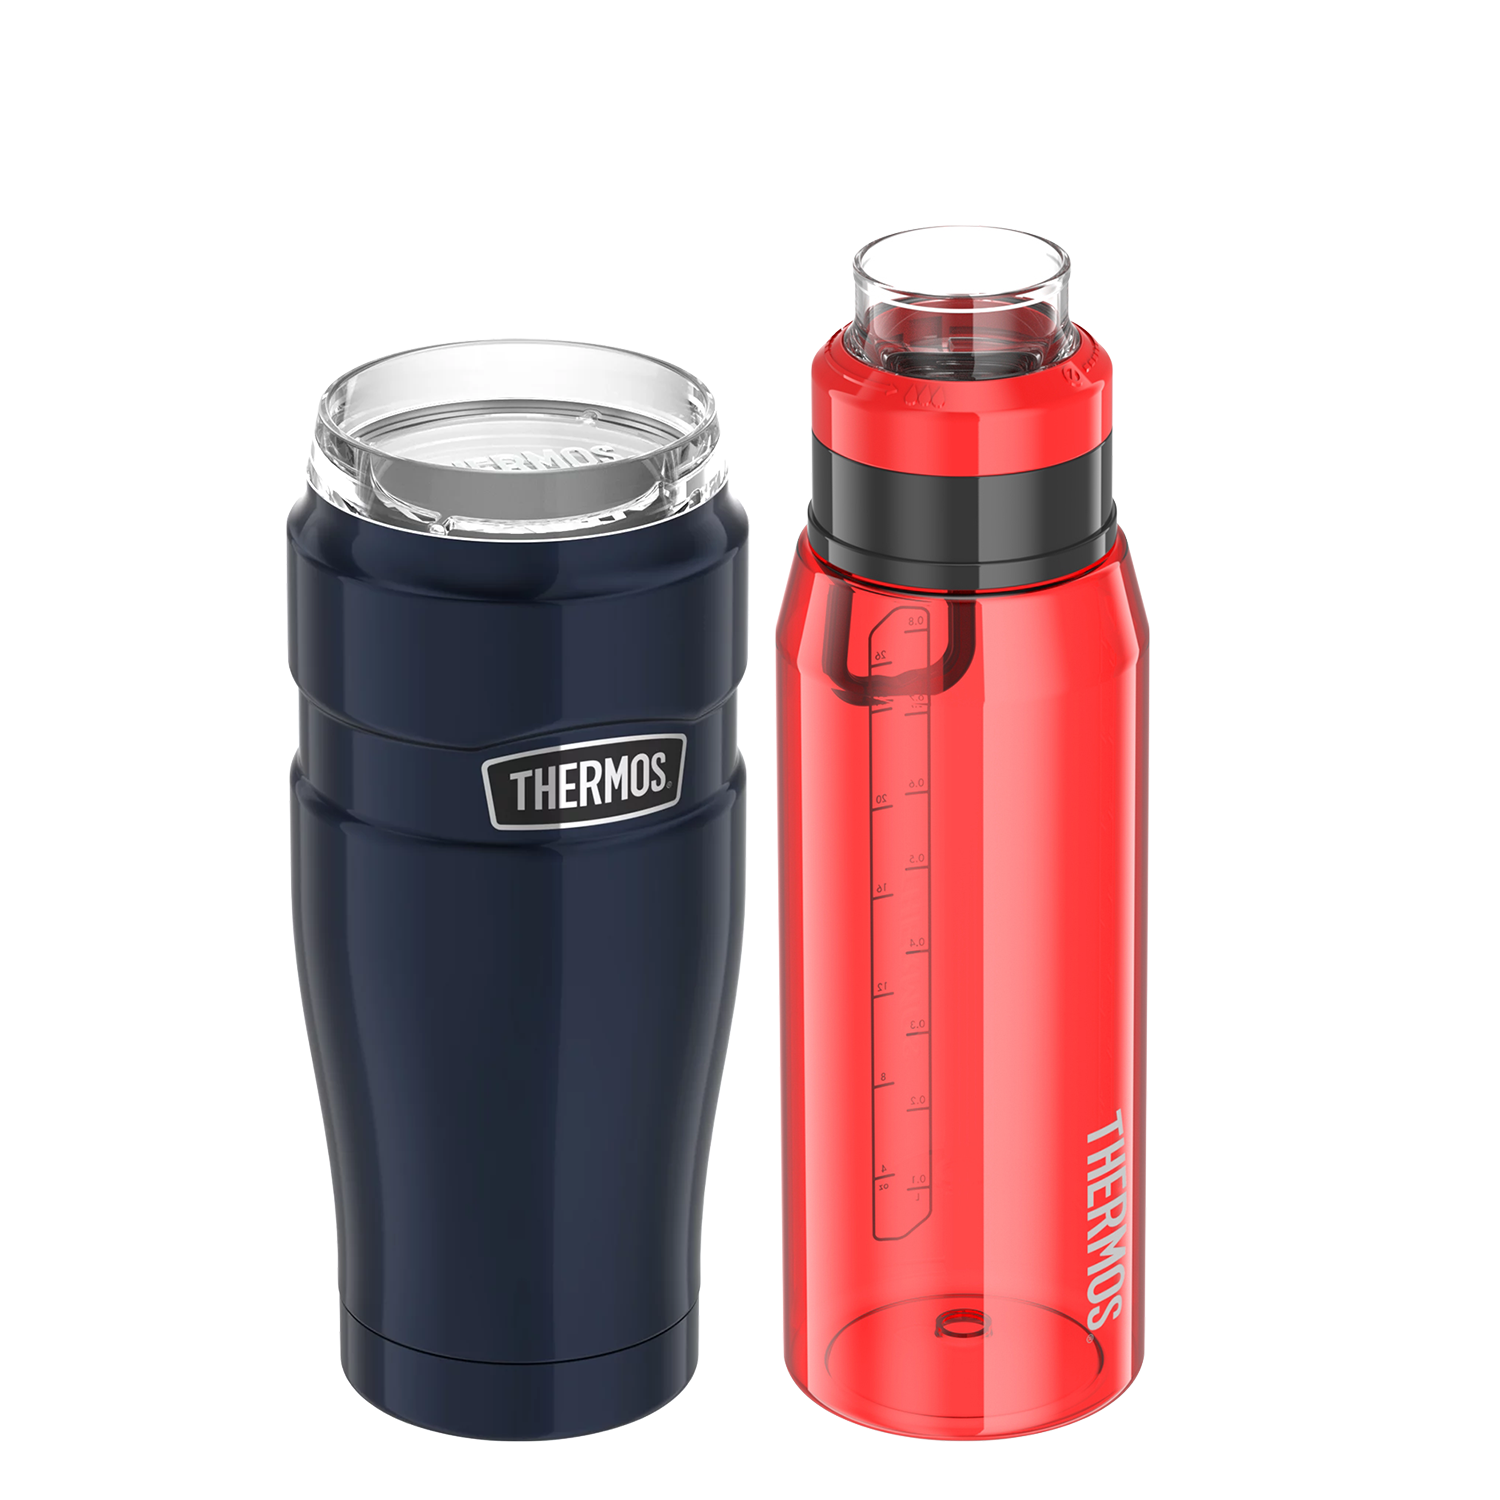 32OZ 360-DEGREE DRINK LID STAINLESS KING STAINLESS STEEL TUMBLER & 32OZ HYDRATION BOTTLE